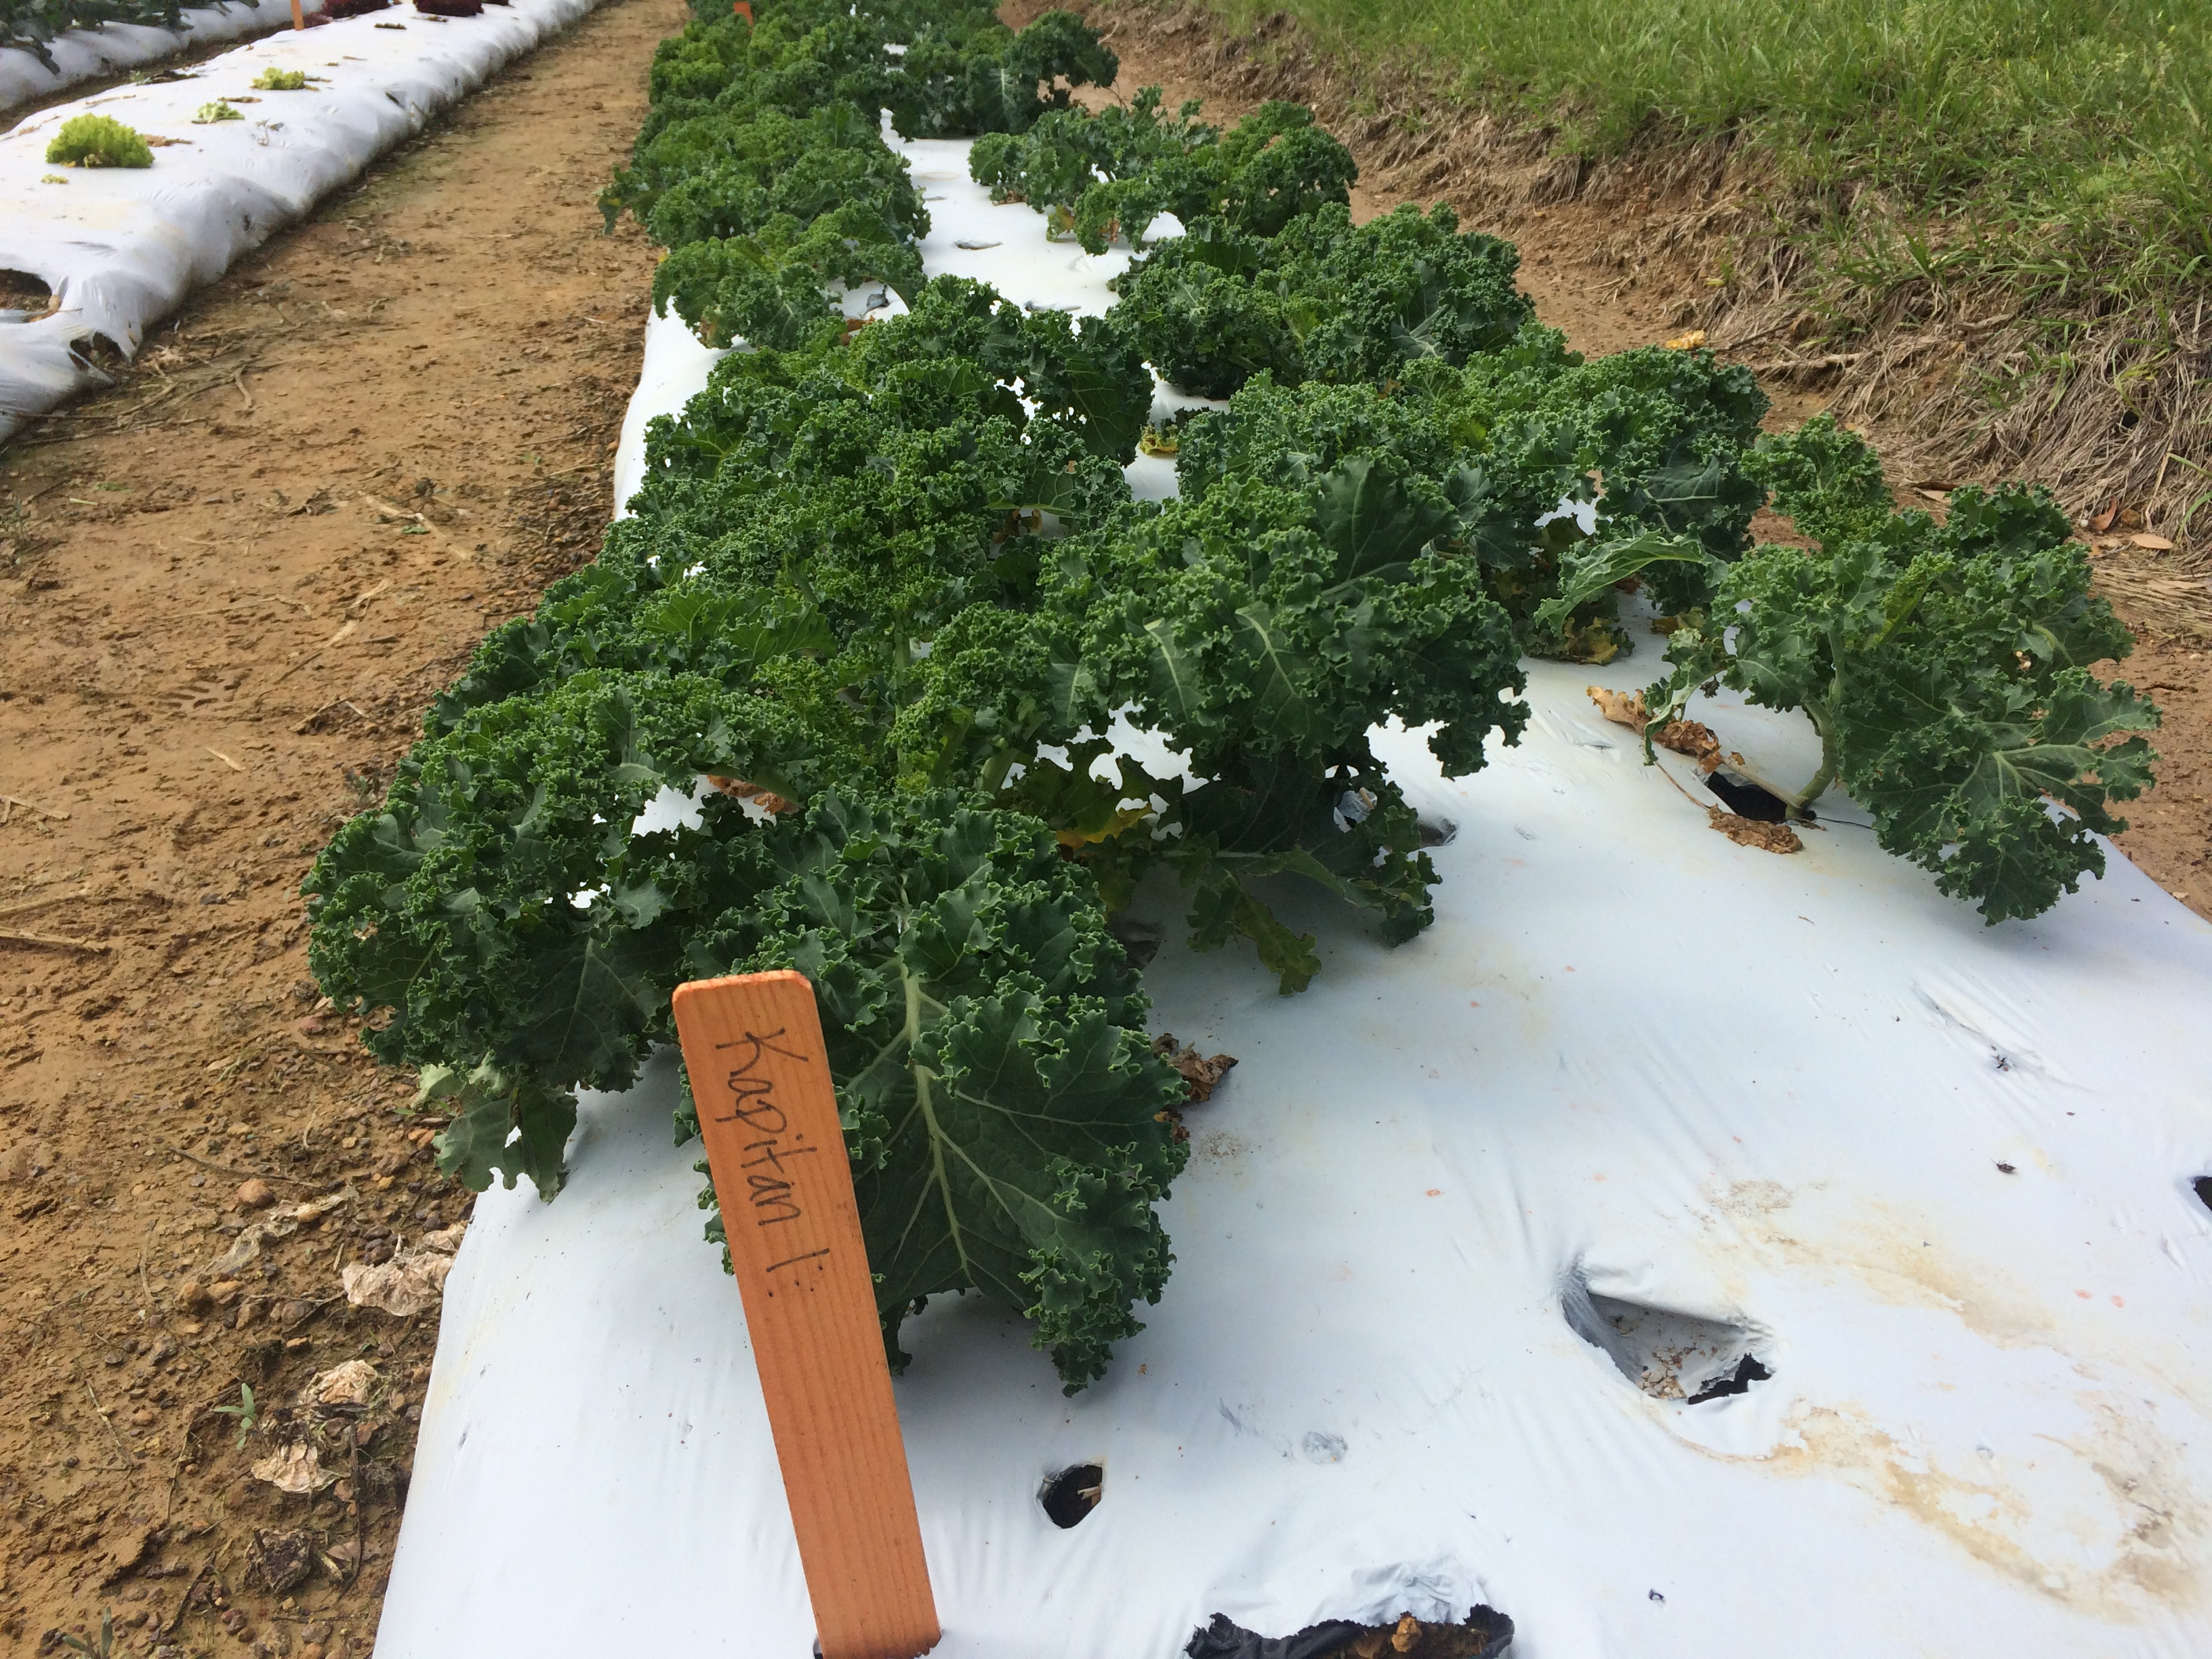 2017 LSU AgCenter / MoravoSeed Lettuce and Kale Trials